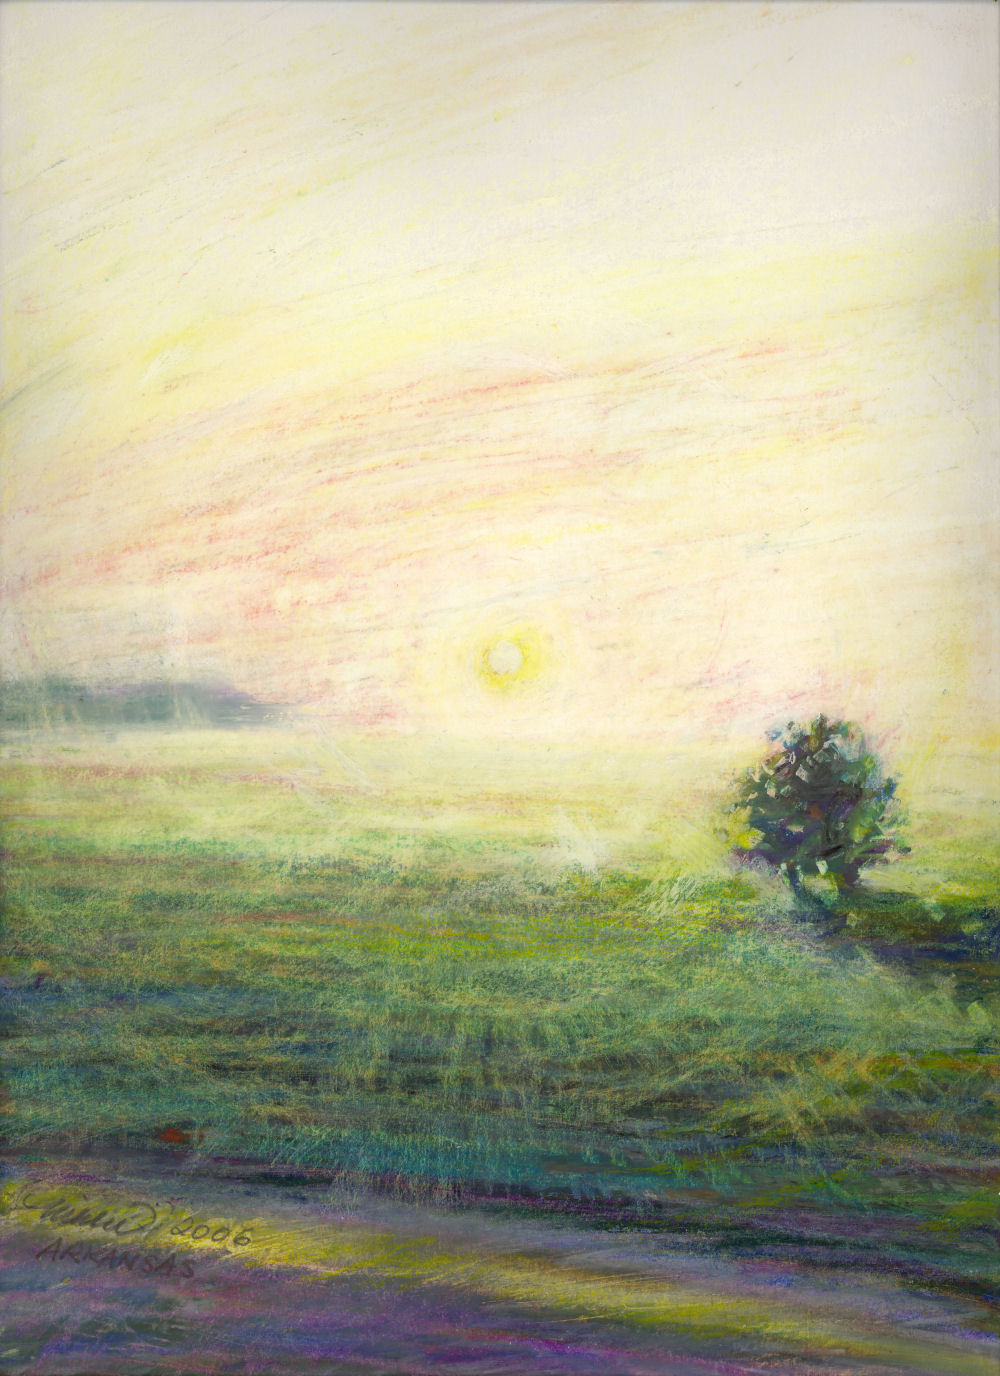 Arkansas, July 6:25 a.m. 14 x 11 oil pastels on paper